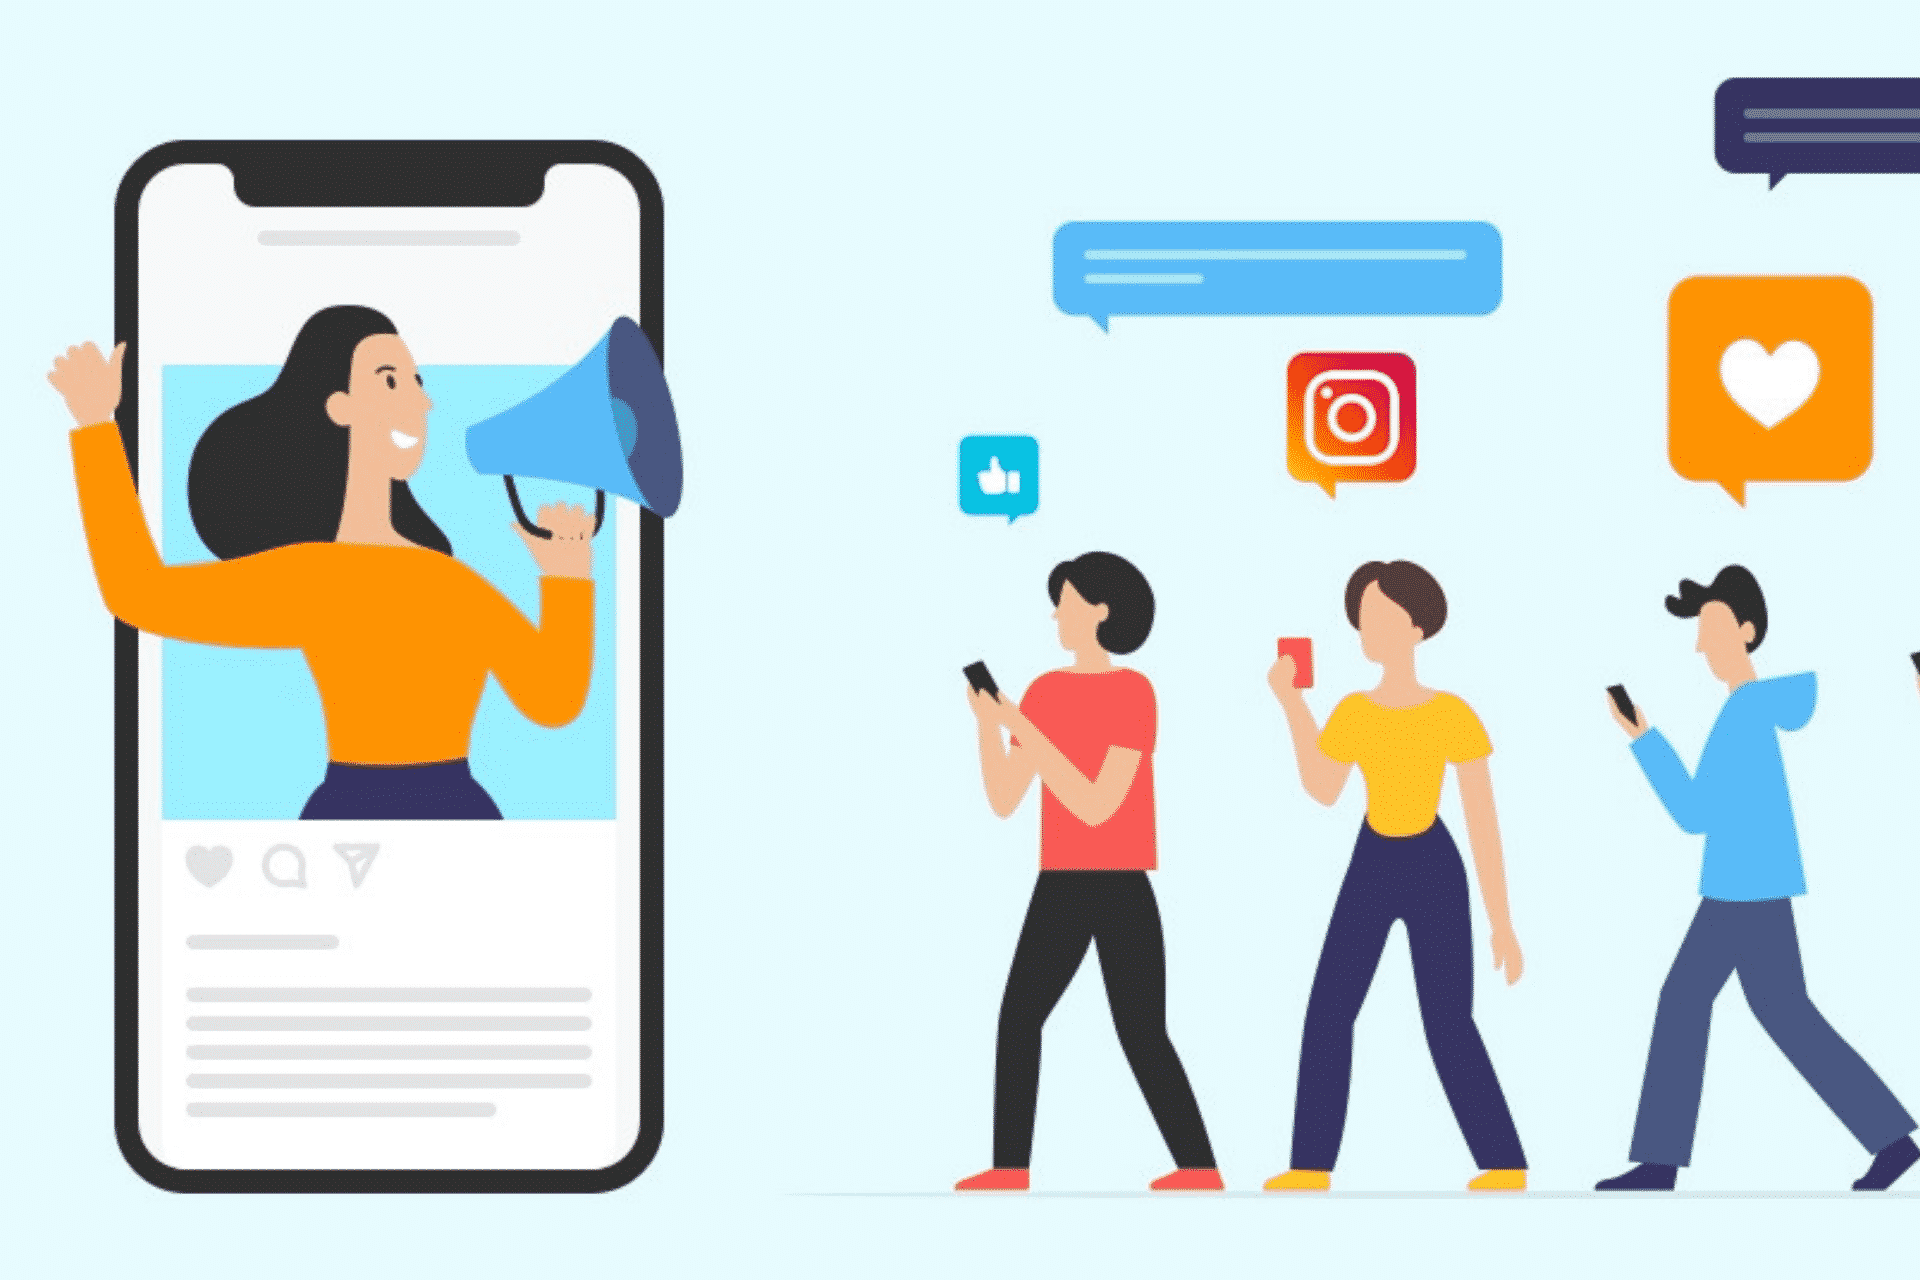 Influencer Marketing Digital Marketing Trends 2020